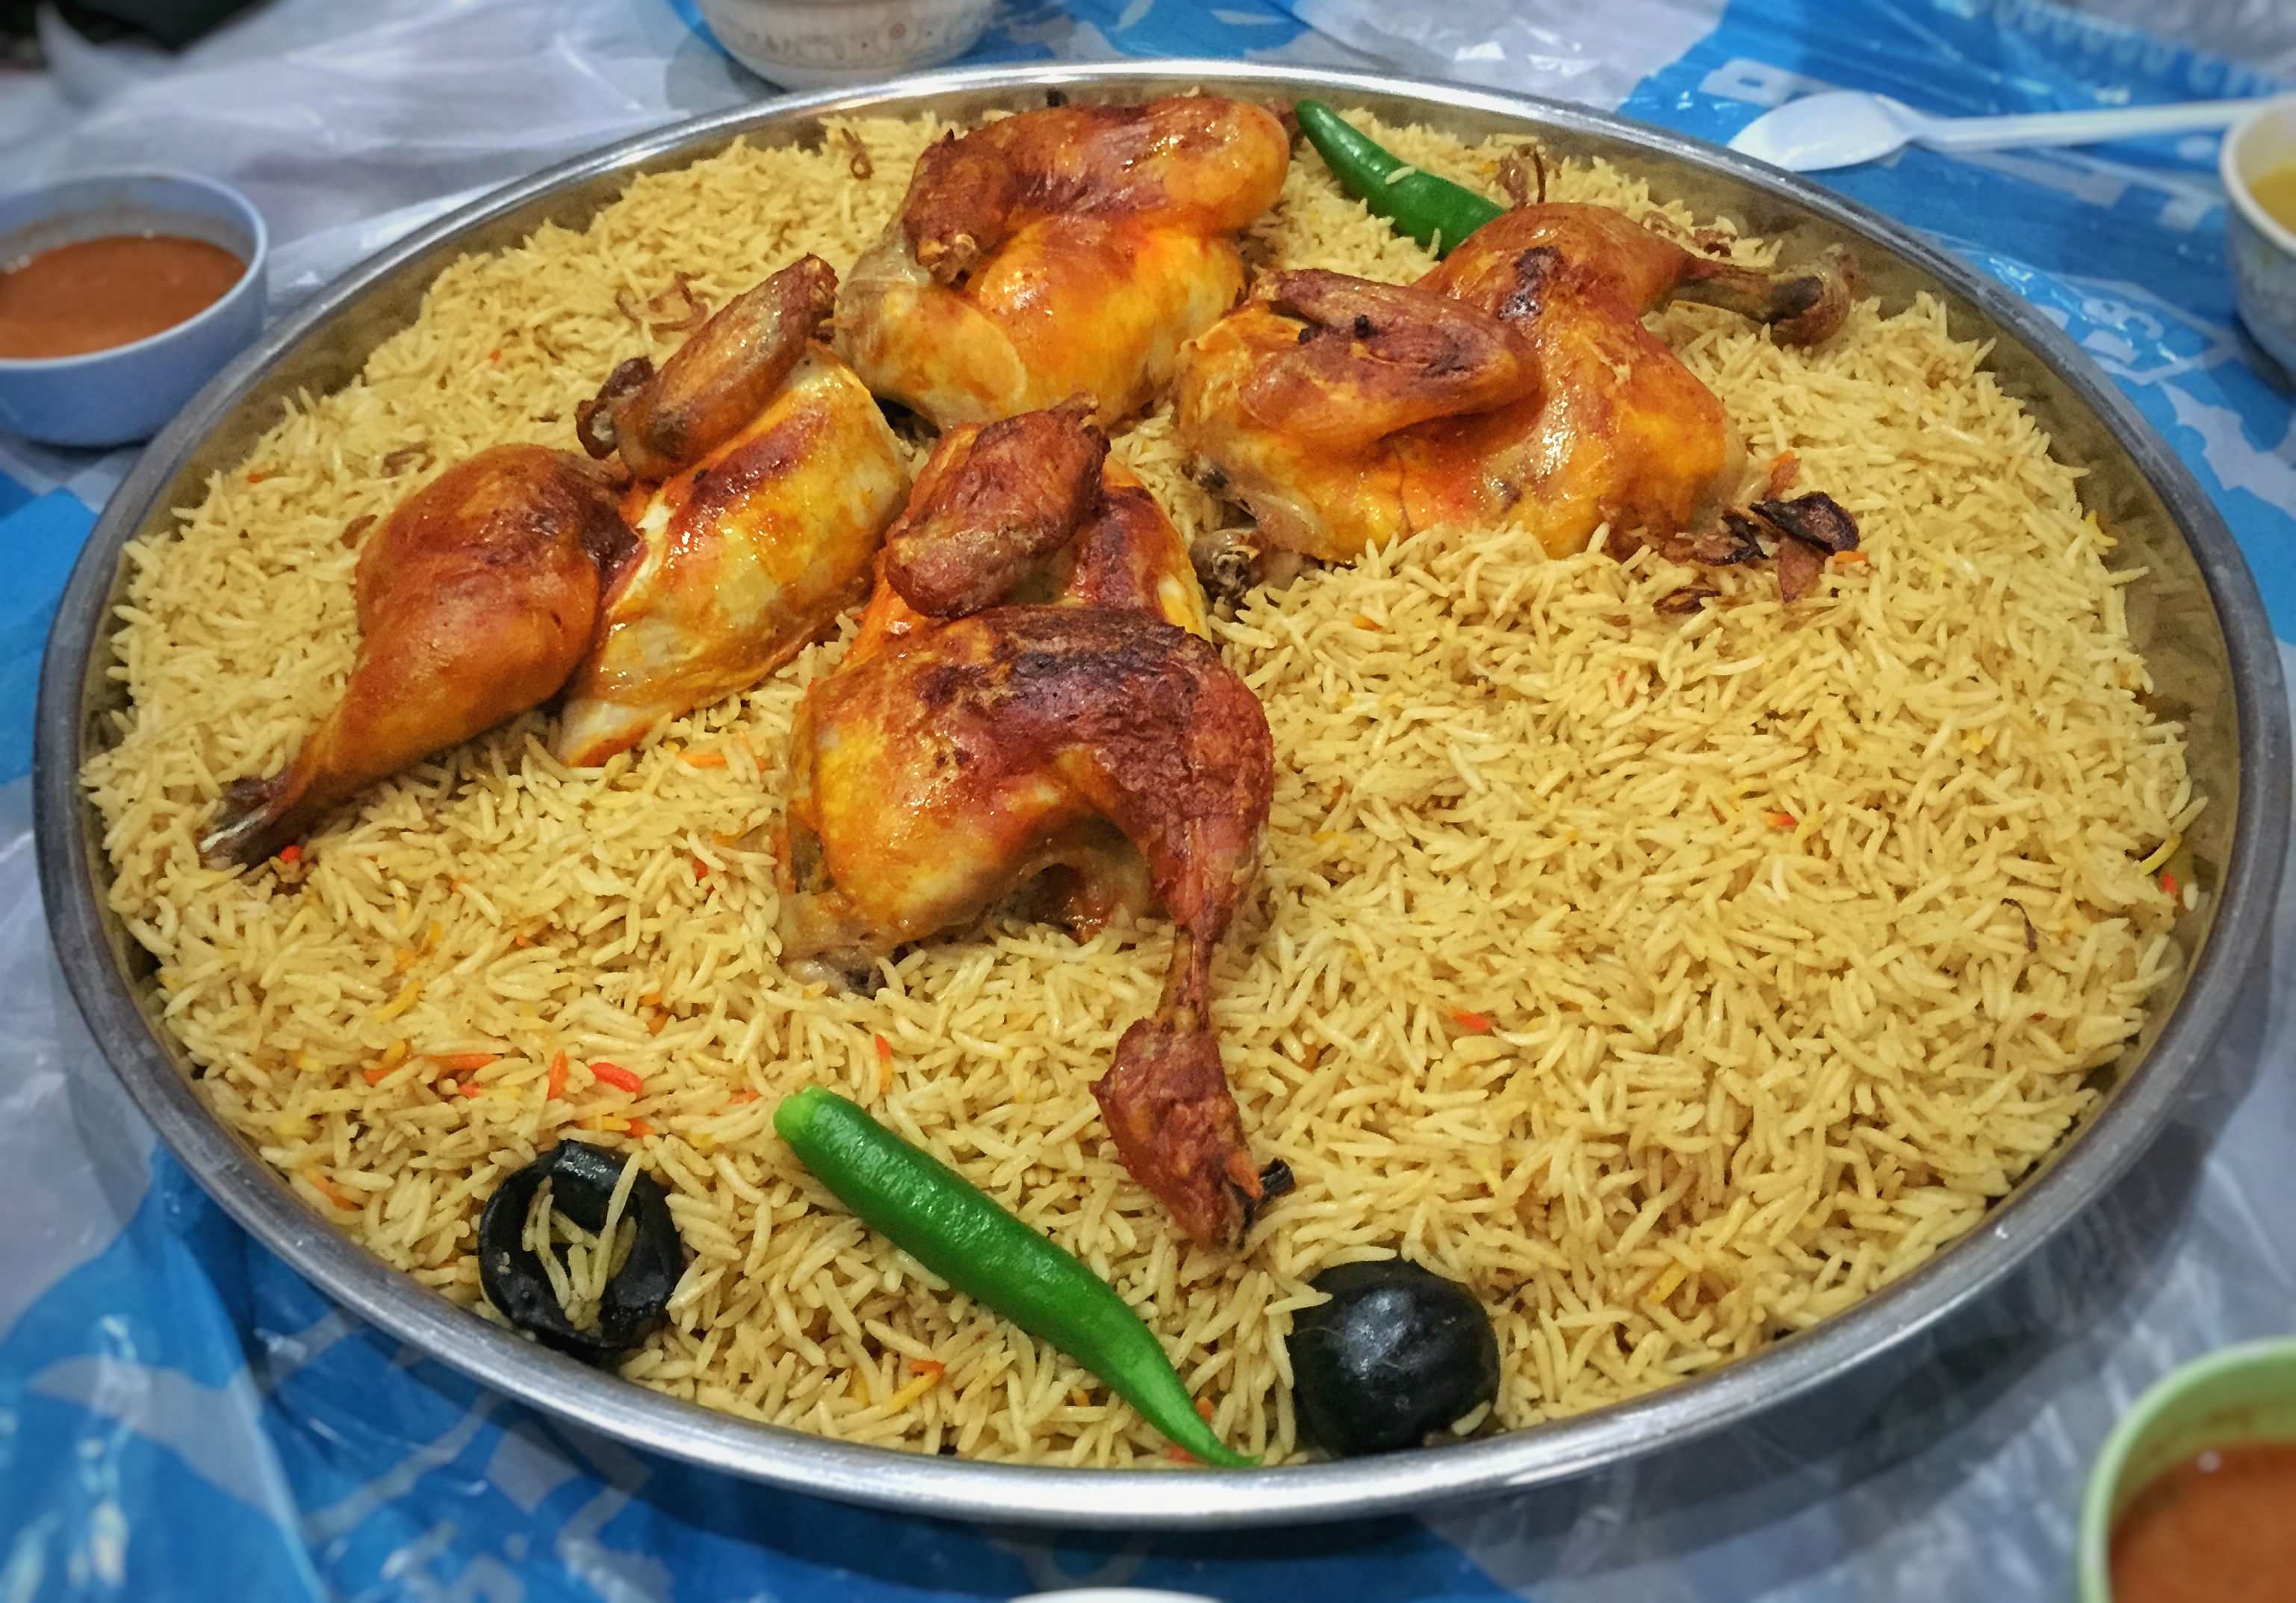 Dammamiyah Kabsa At Teef Madhinah Restaurant Dammam Food With Shayne